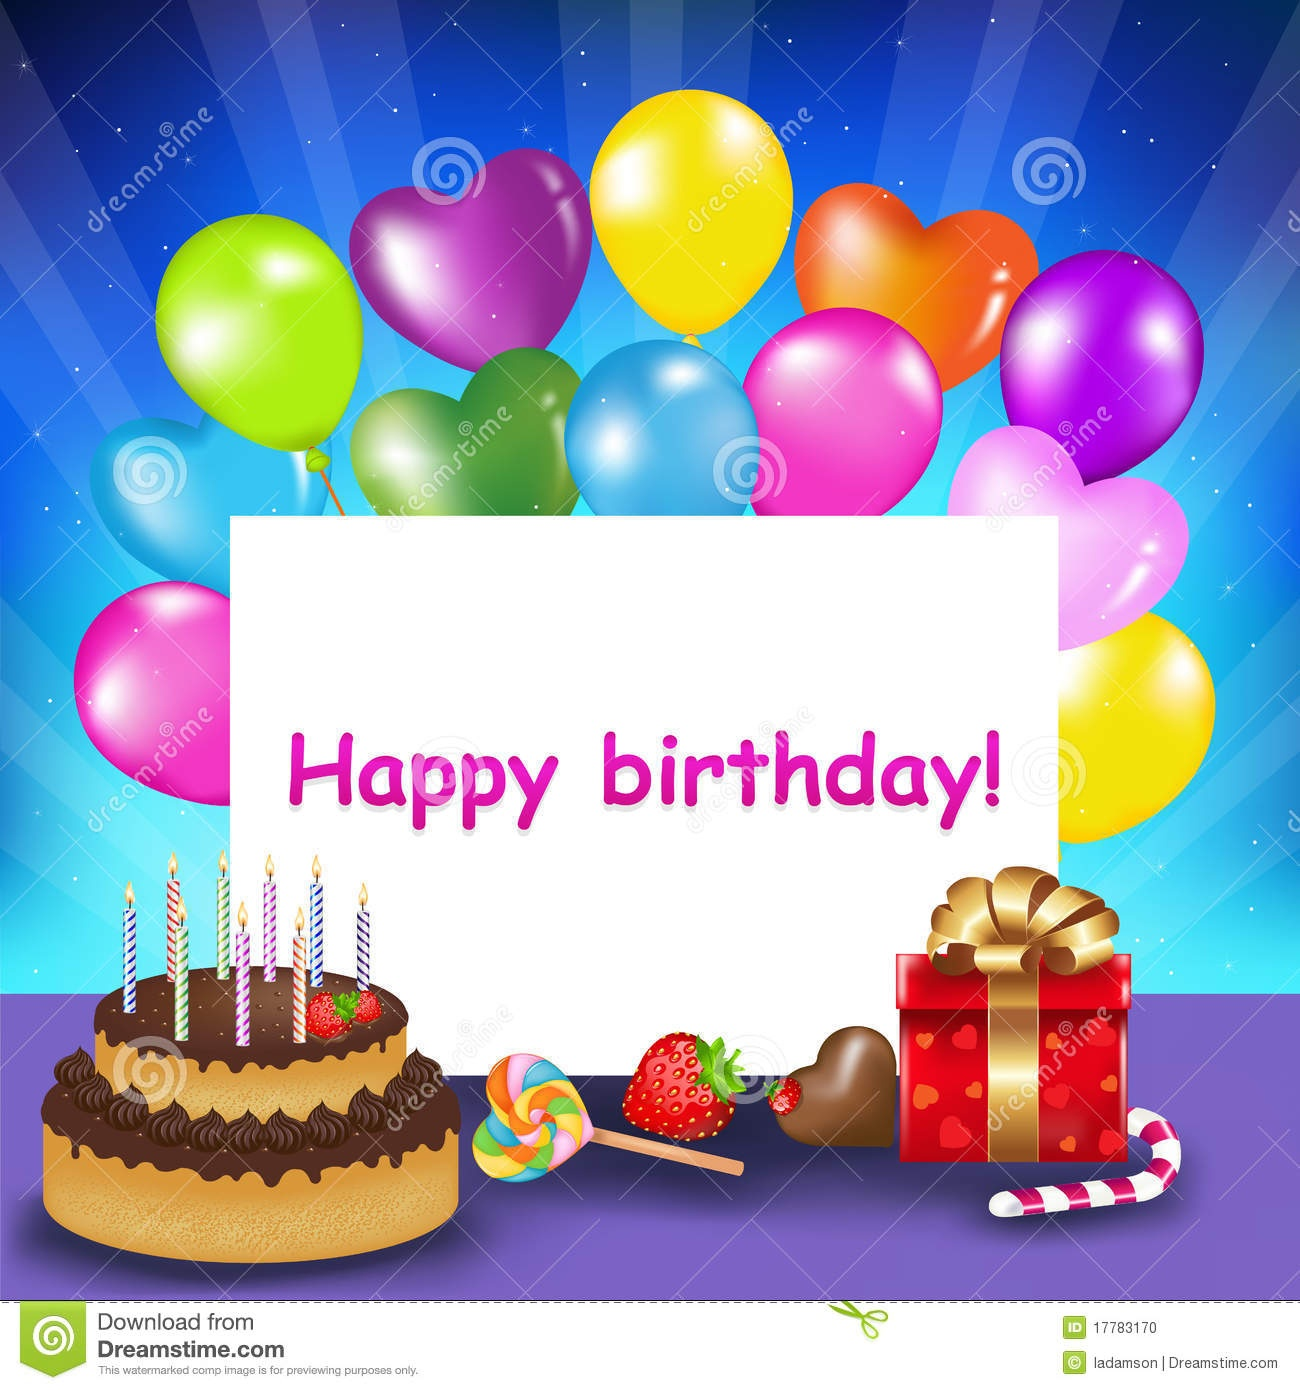 91+ Happy Birthday Custom Cards Free - Happy Birthday Gift Cards - Free Printable Happy Birthday Cards Online